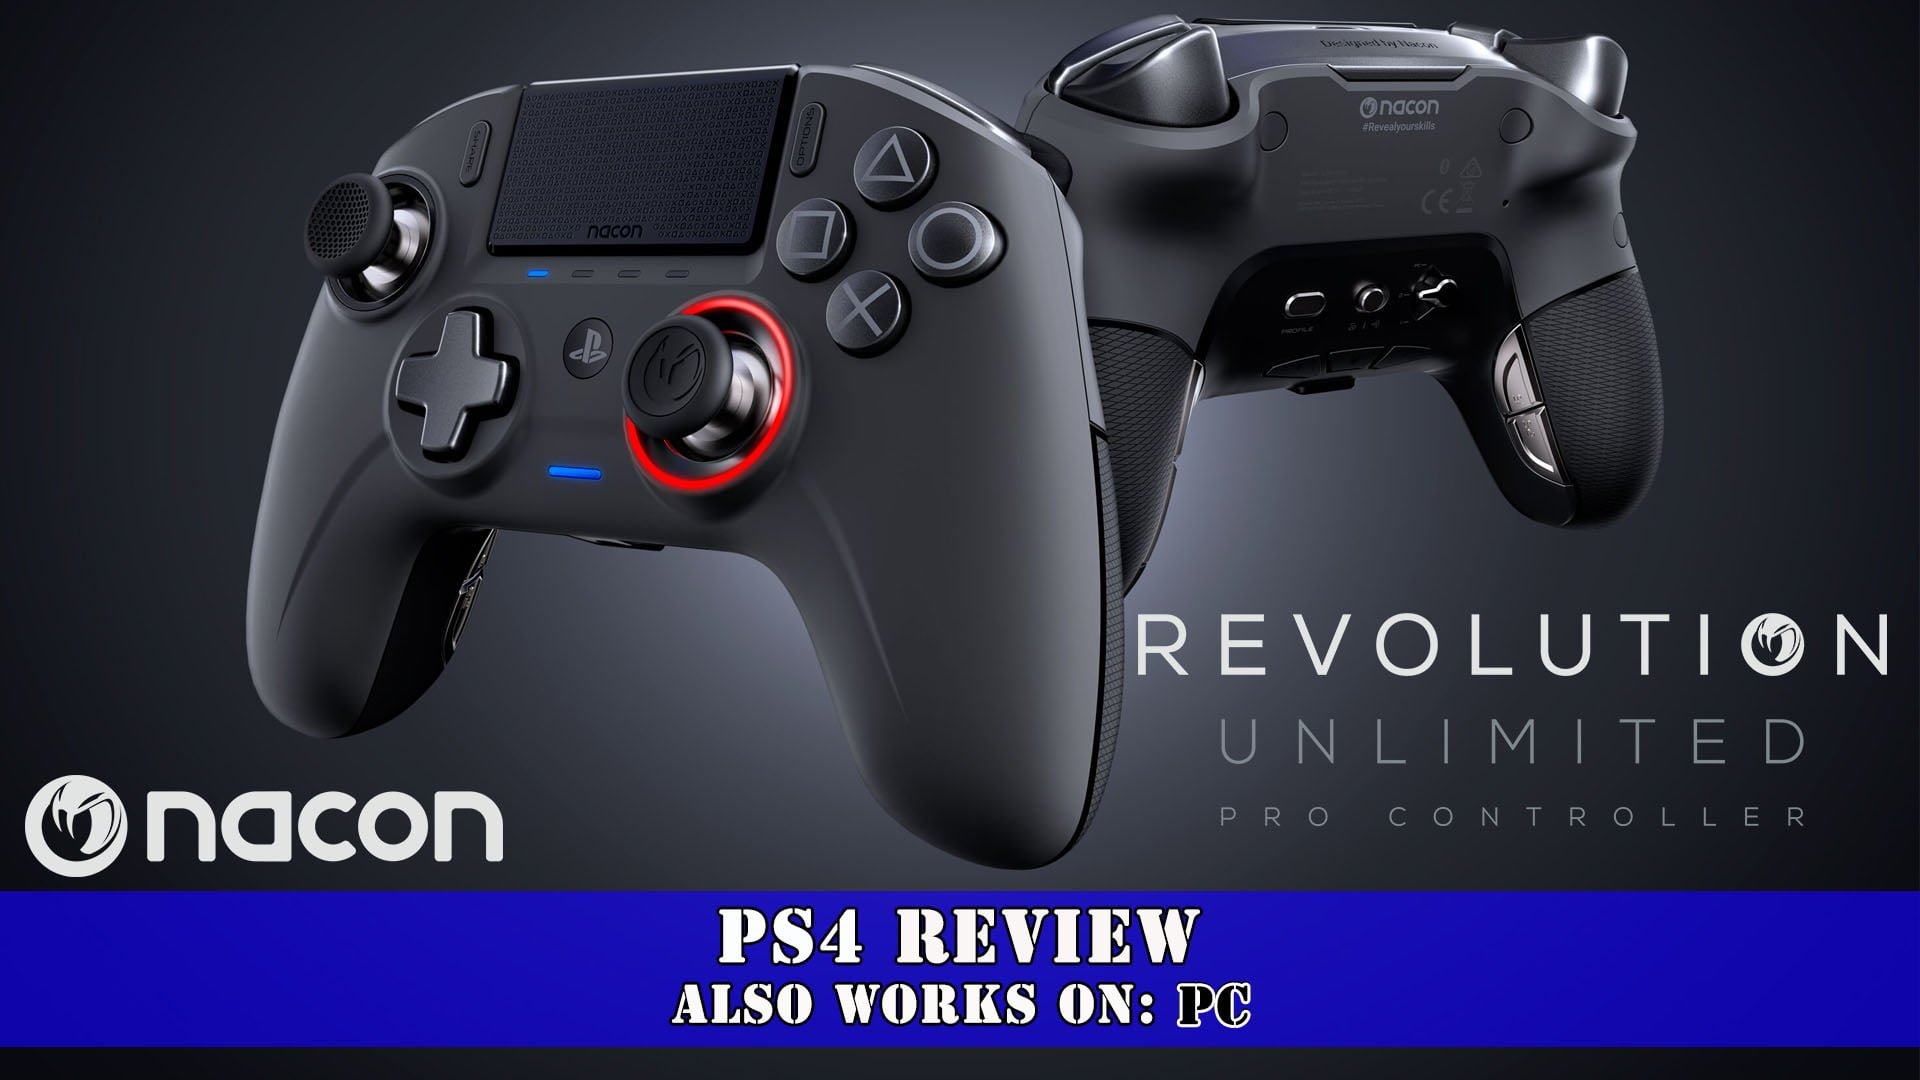 NACON Revolution Unlimited Pro Controller (PS4/PC) Review